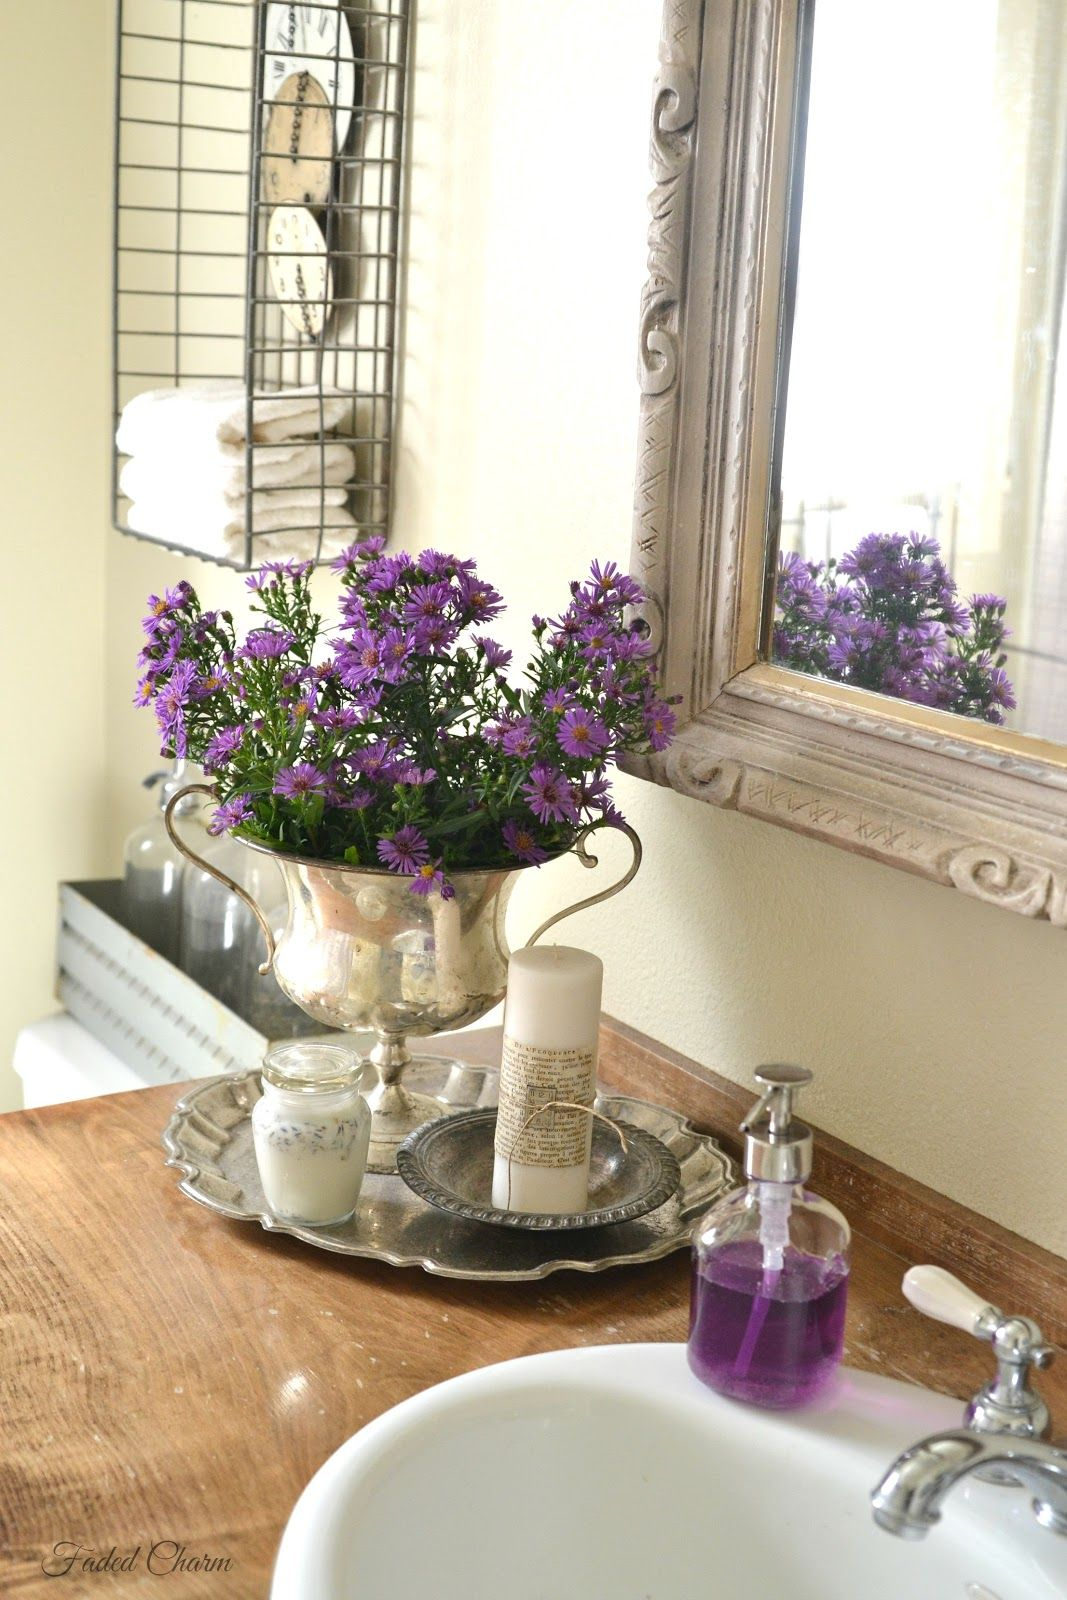 faded charm: ~end of summer blooms~ | lavender bathroom decor, purple bathroom decor, purple